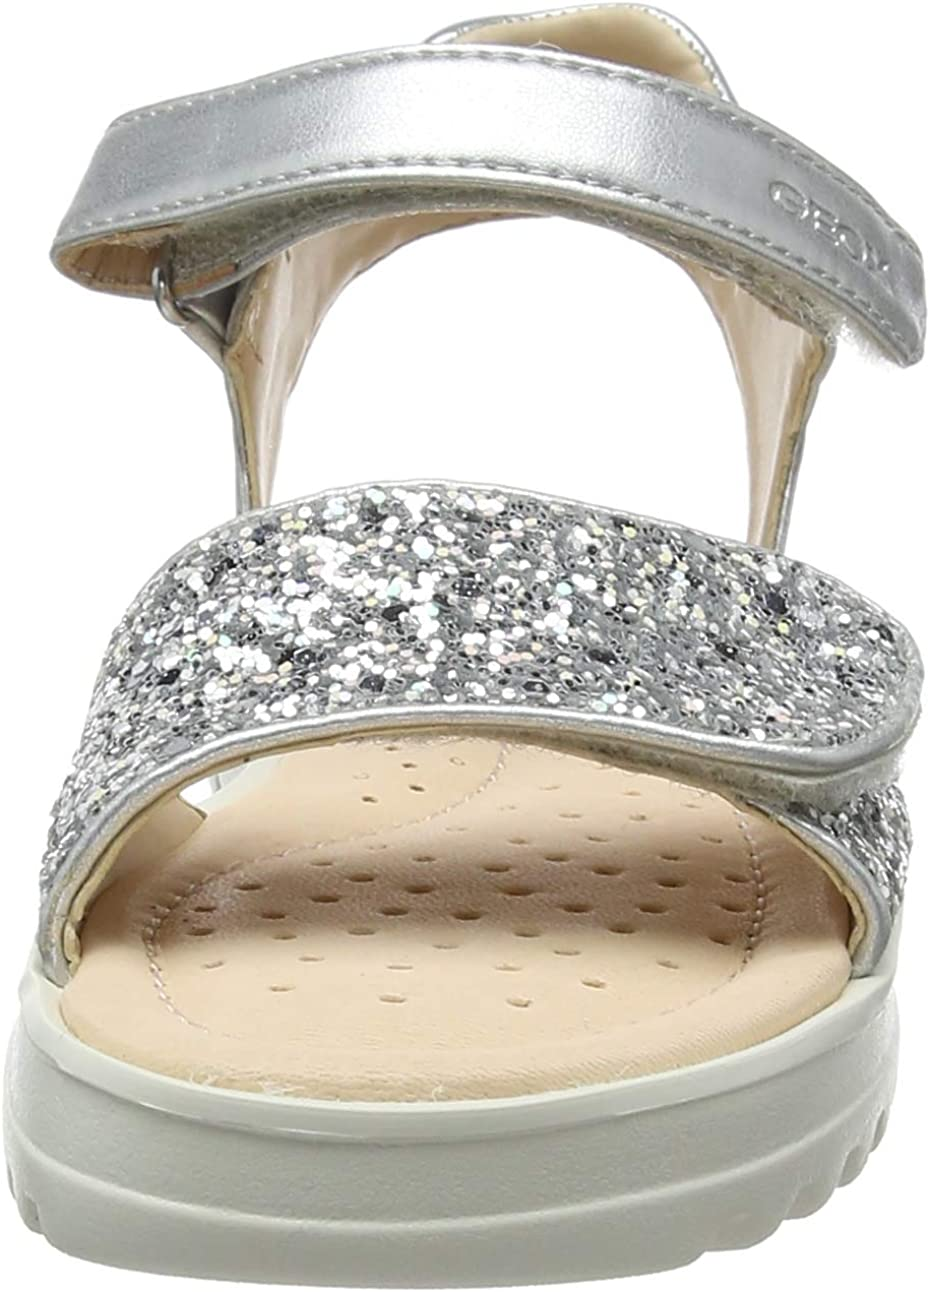 Geox J Sandal Coralie Girl A Bout Ouvert Fille